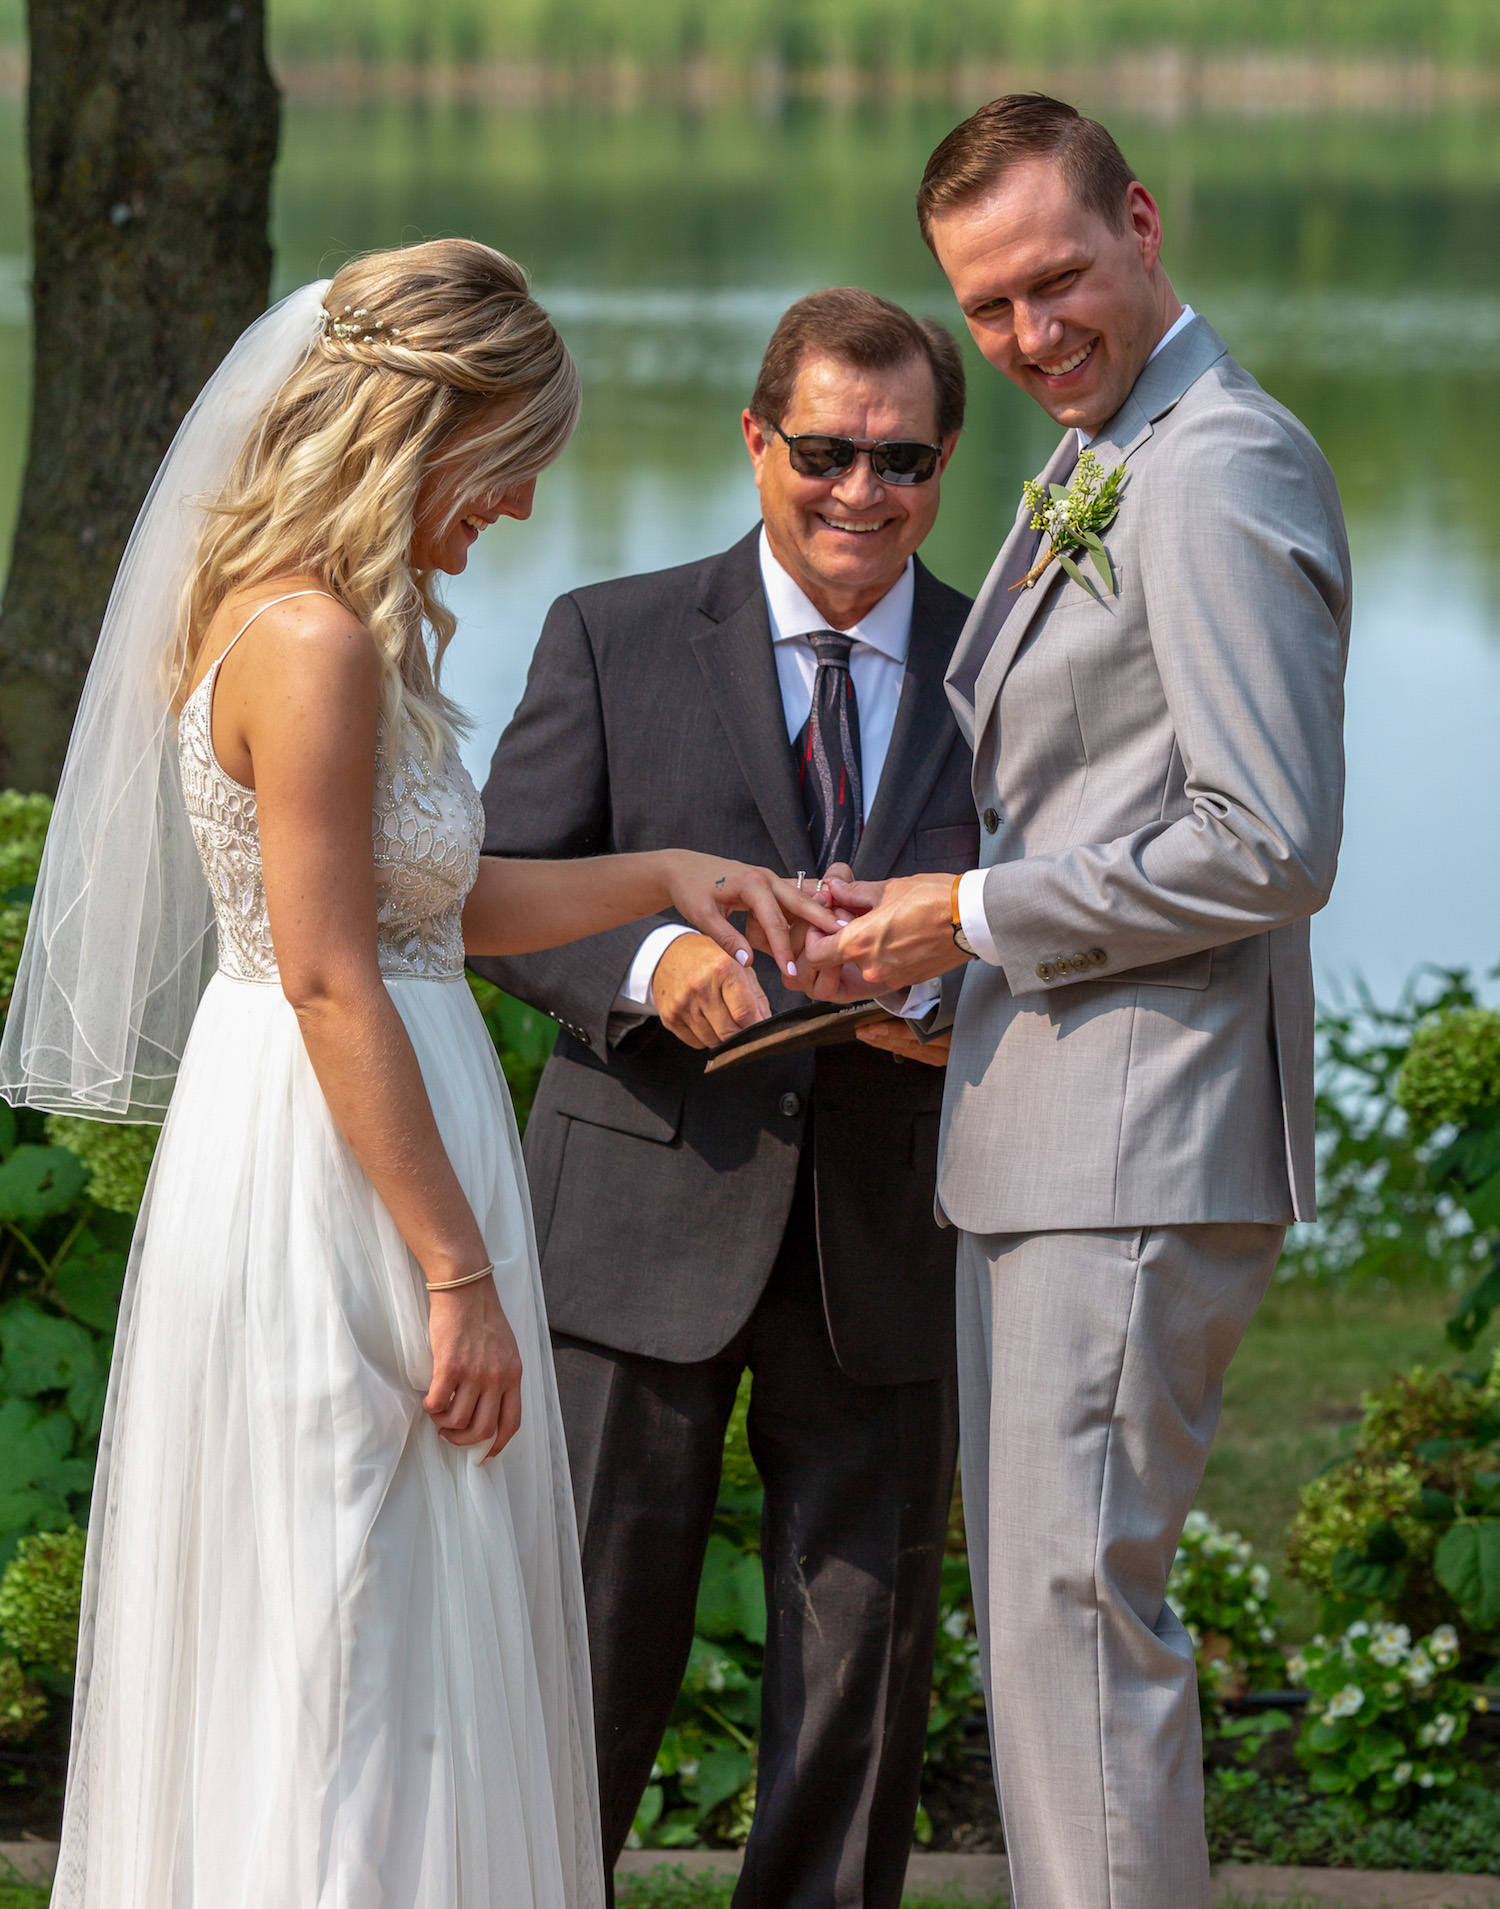 Cindyrellas Garden outdoor wedding ceremony by a private lake with wooded backdrops, ring exchange photo